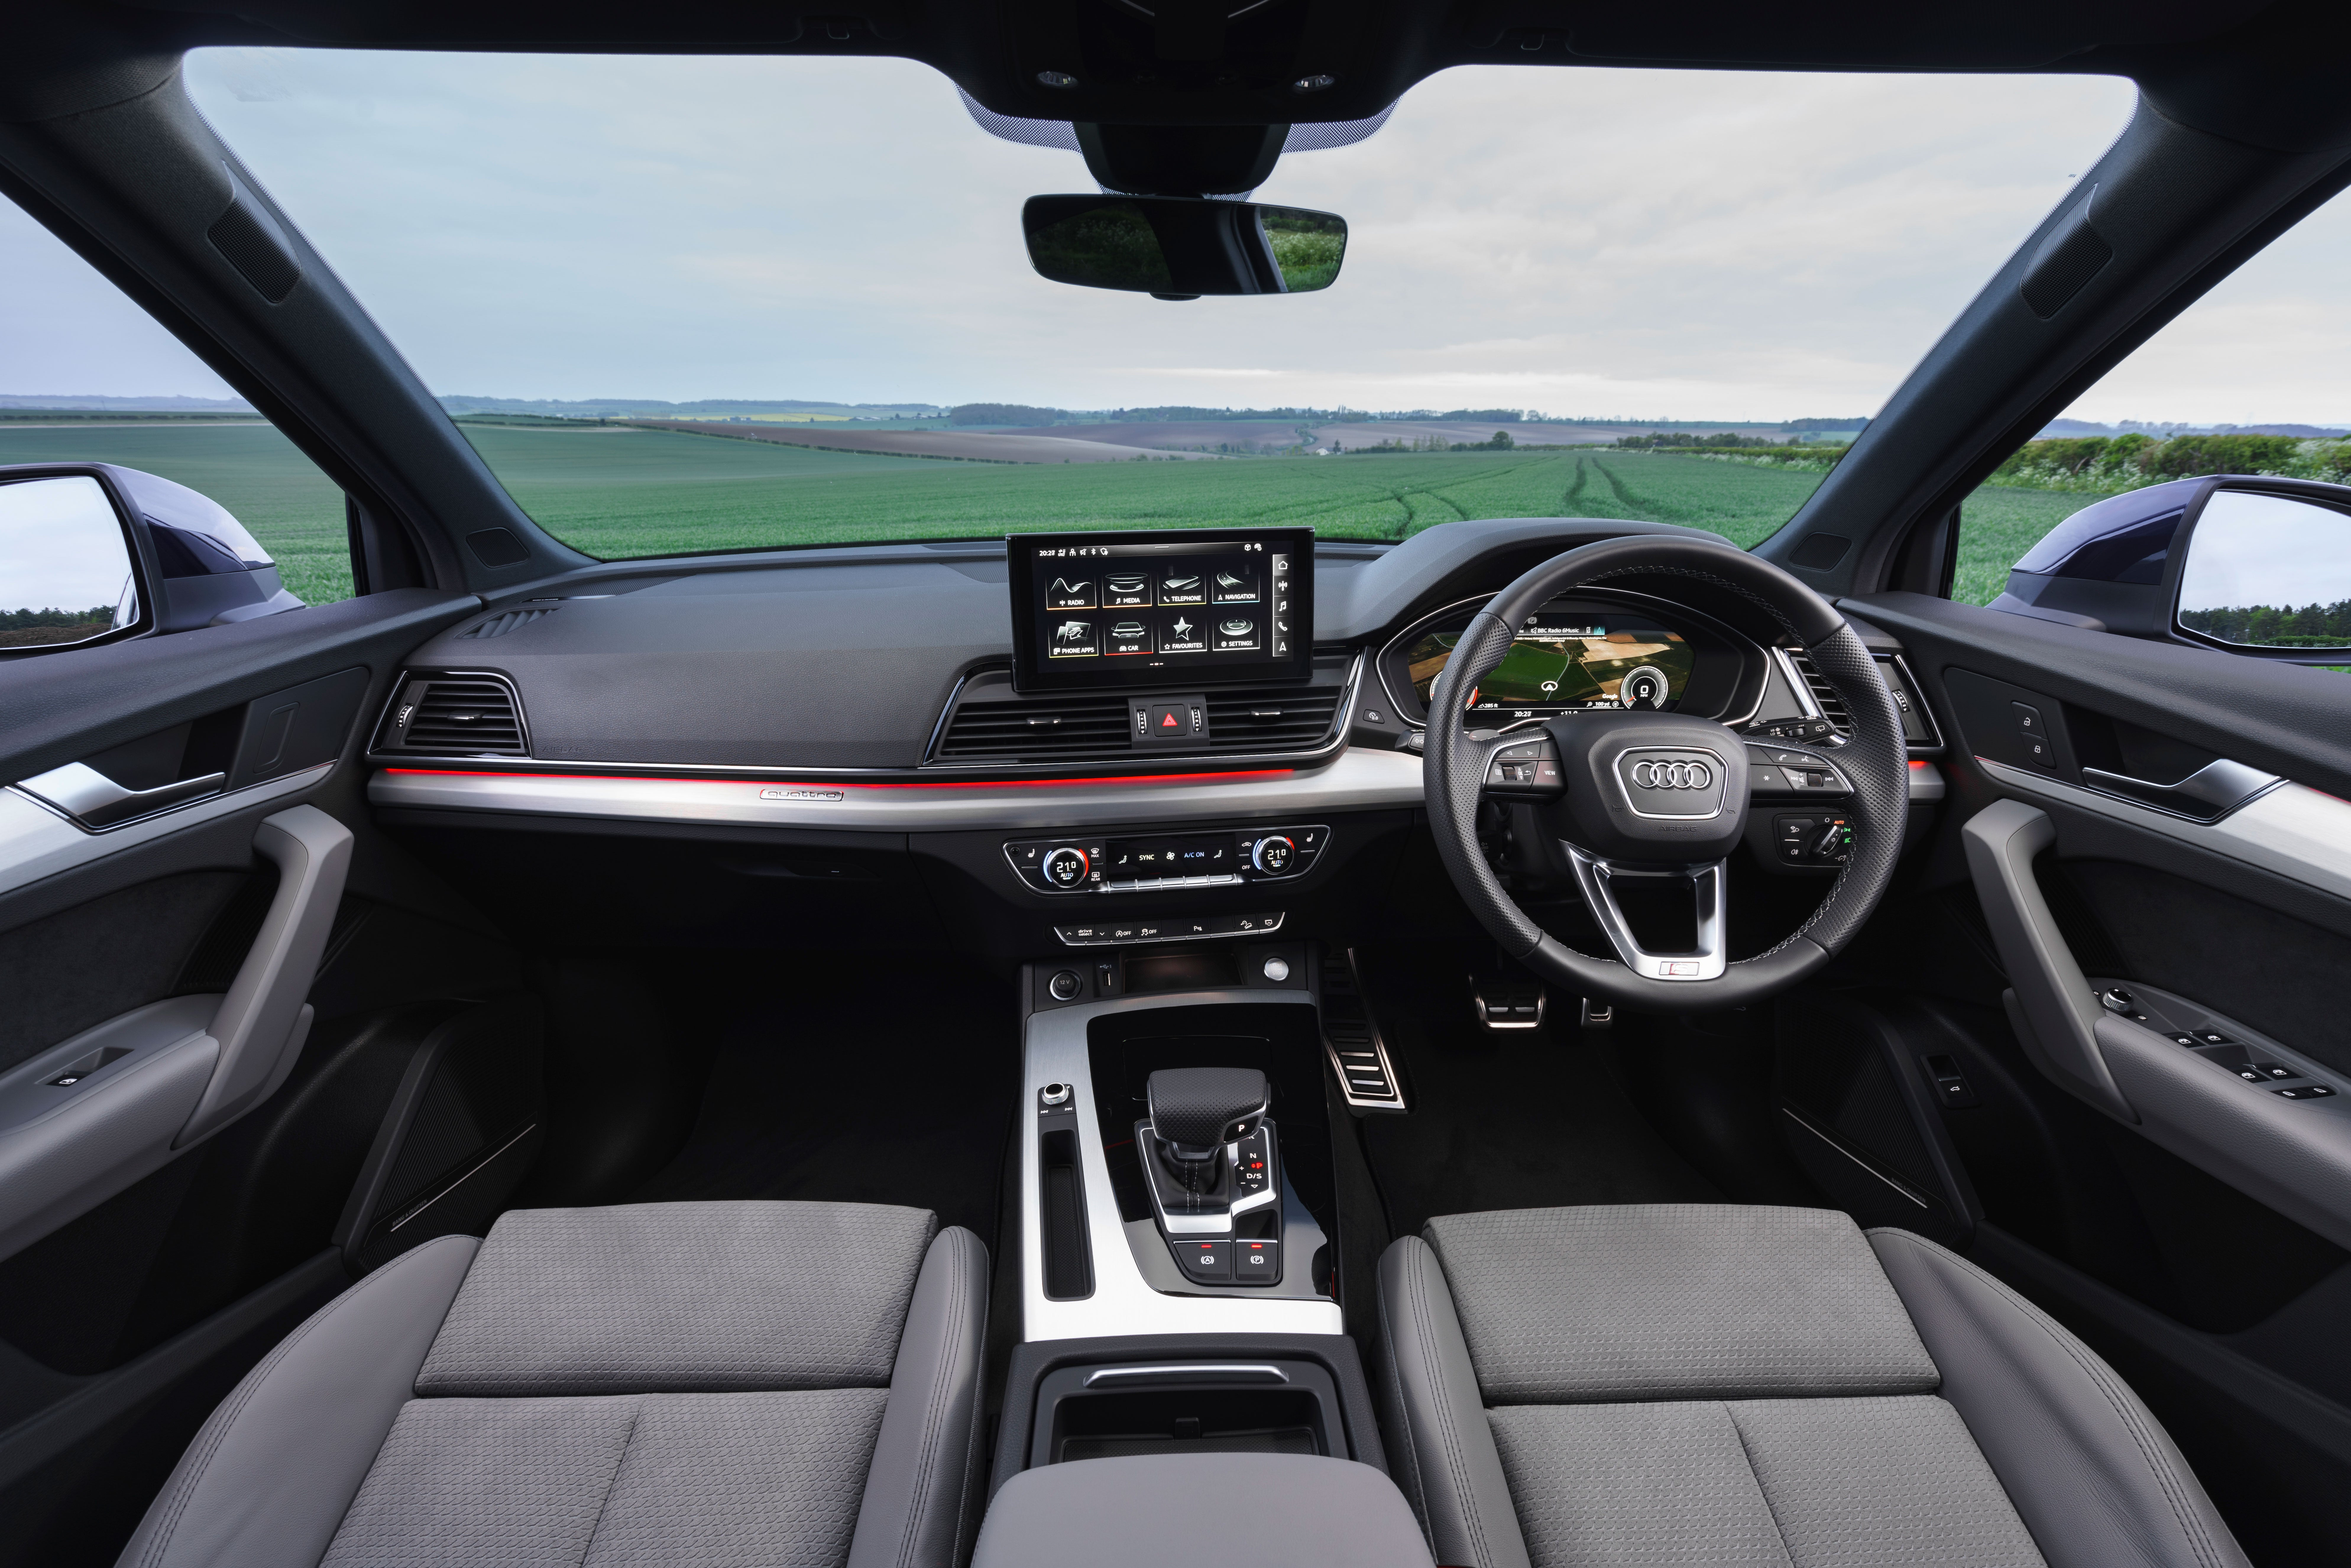 The interior of the Q2 Sportback is typical Audi plushness with lots of high quality and soft-touch materials